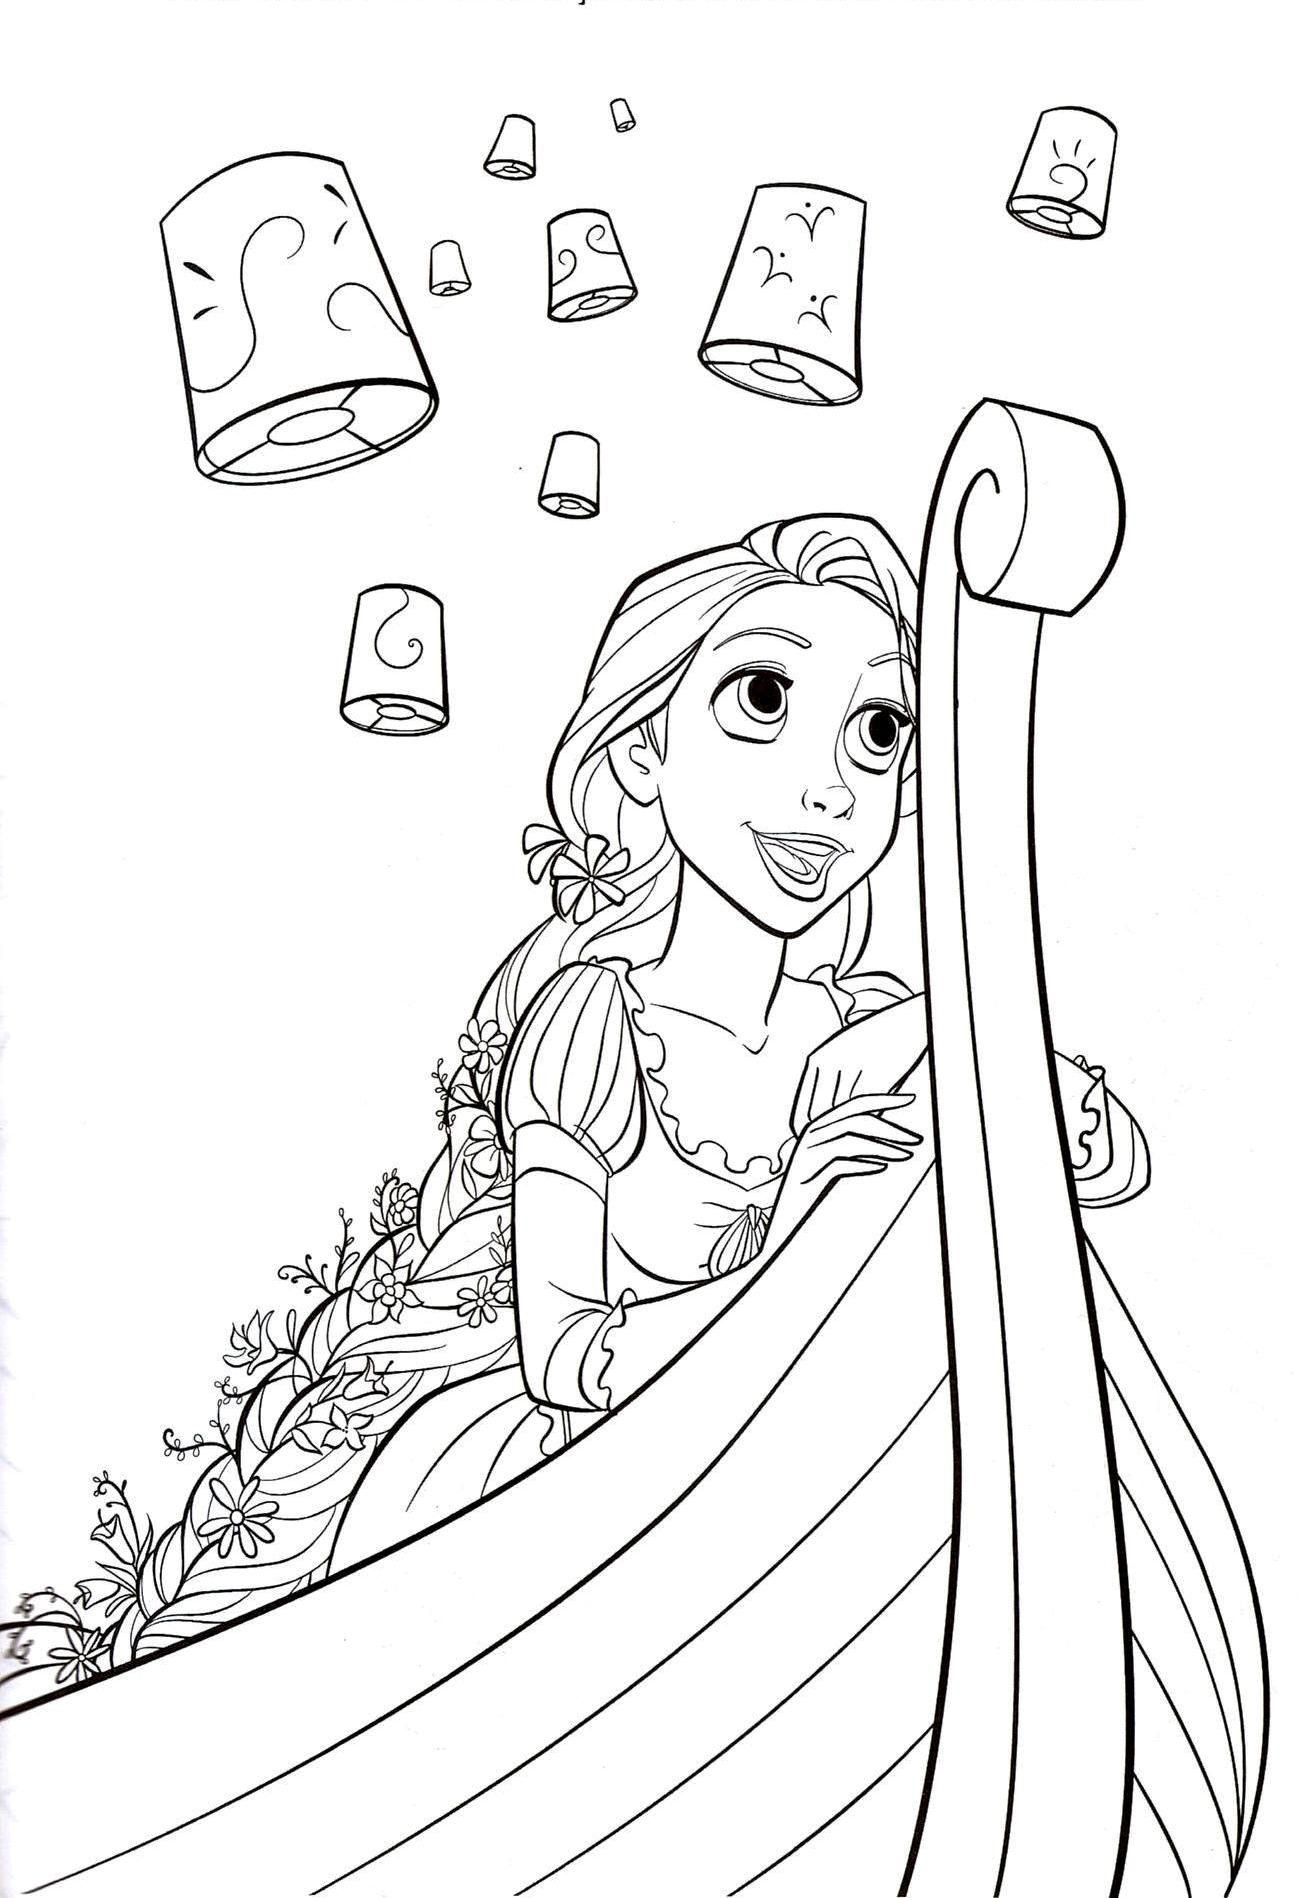 Disney coloring pages shake it up - Nautical Coloring Pages To Download And Print For Free